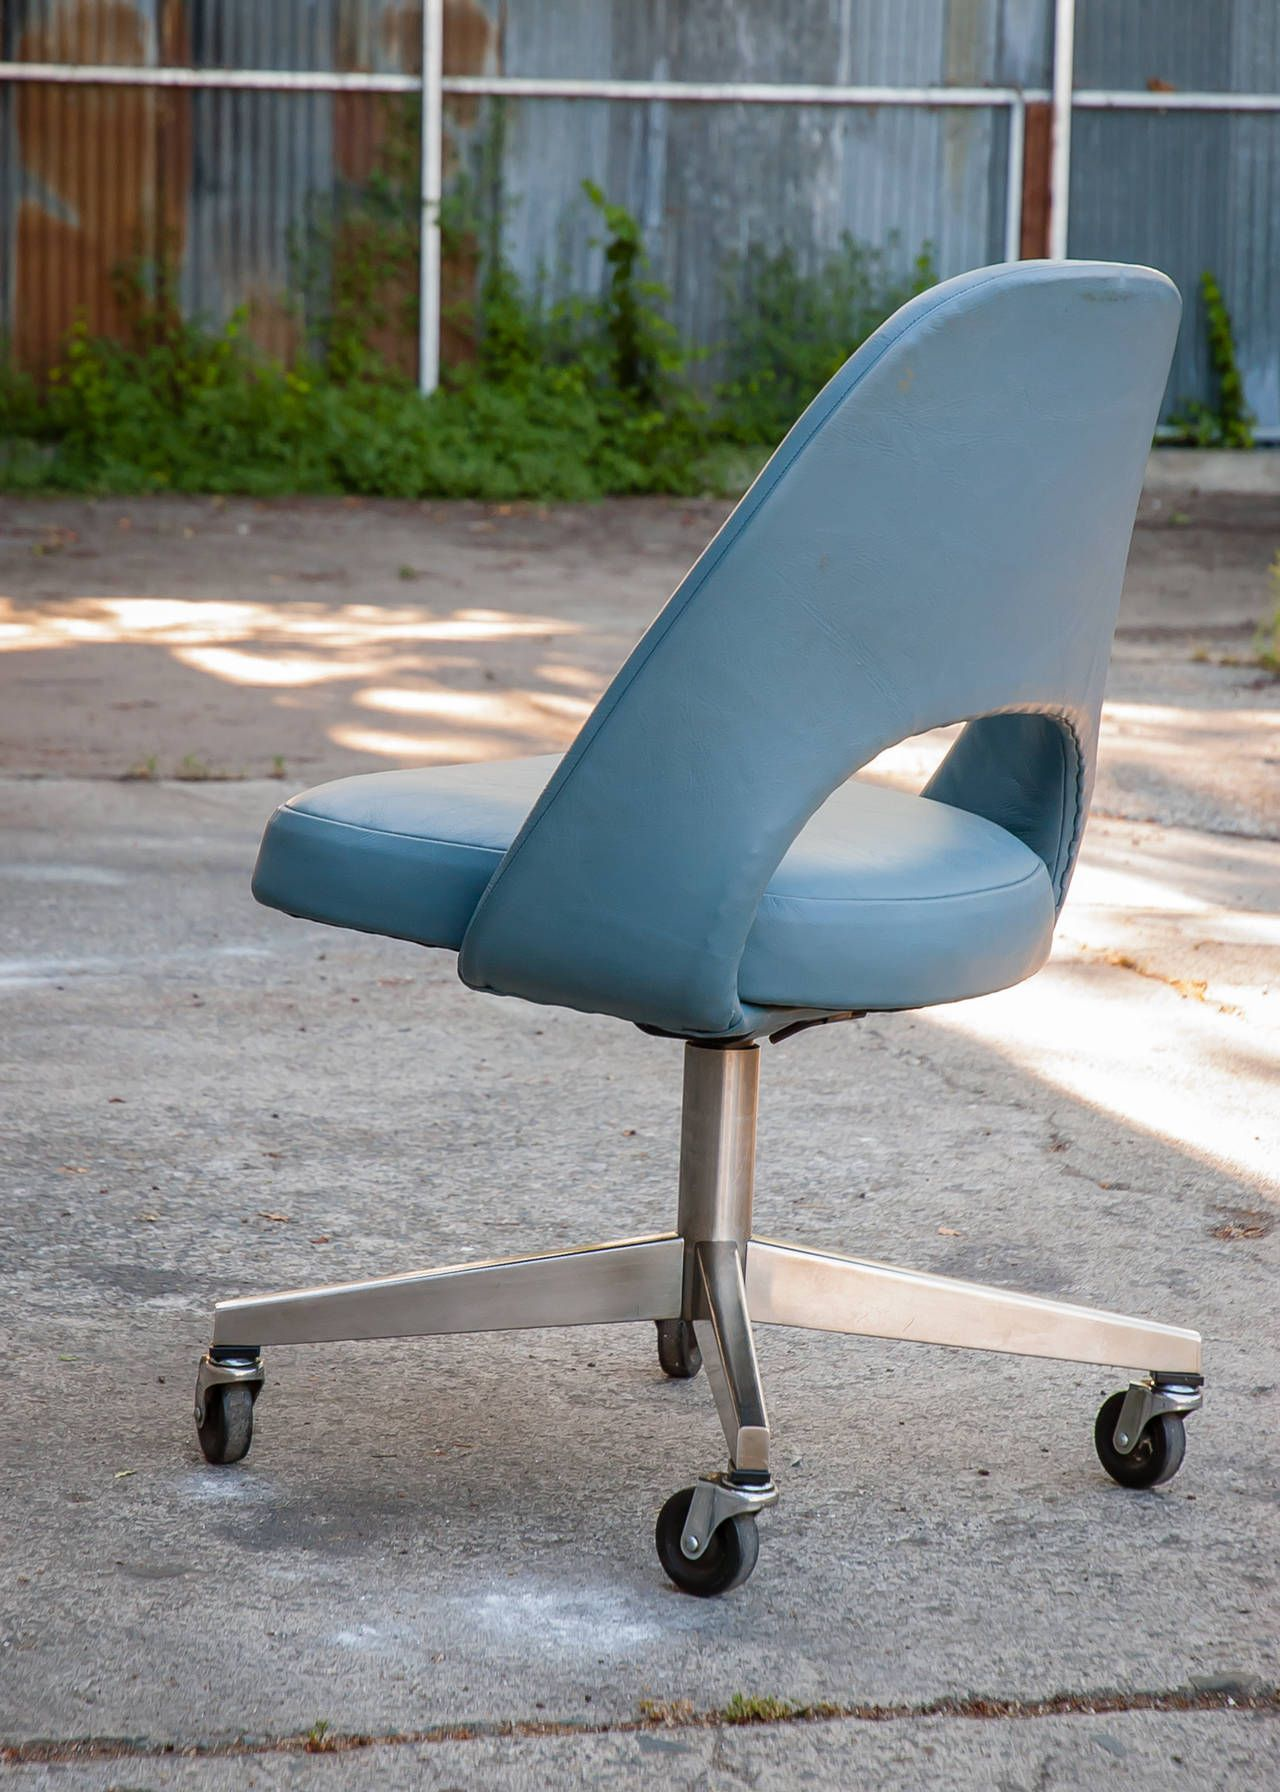 Vintage Saarinen Leather Desk Chair With Casters